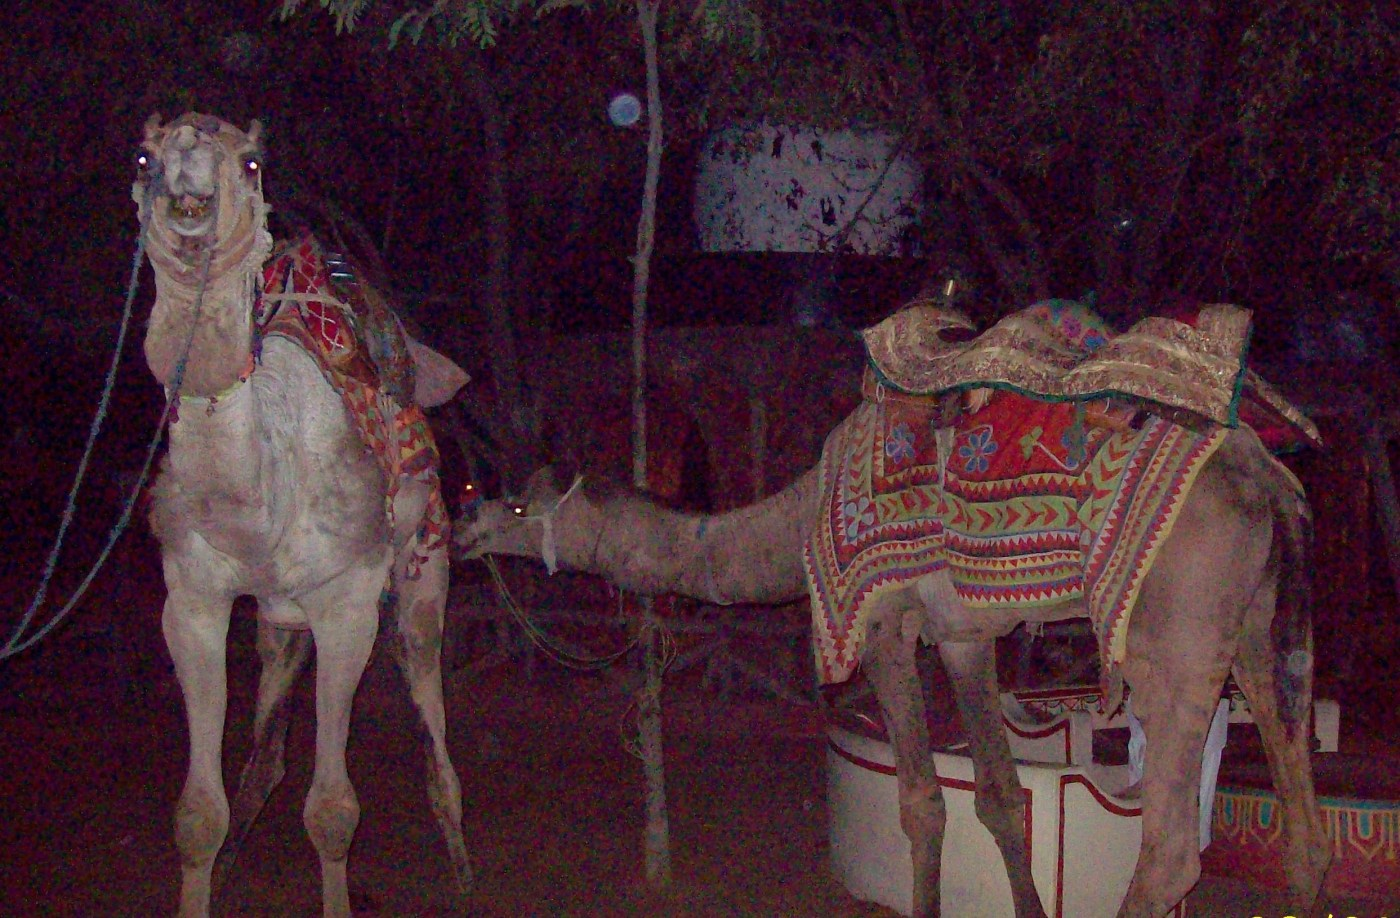 Camels in chowki dhani, jaipur India